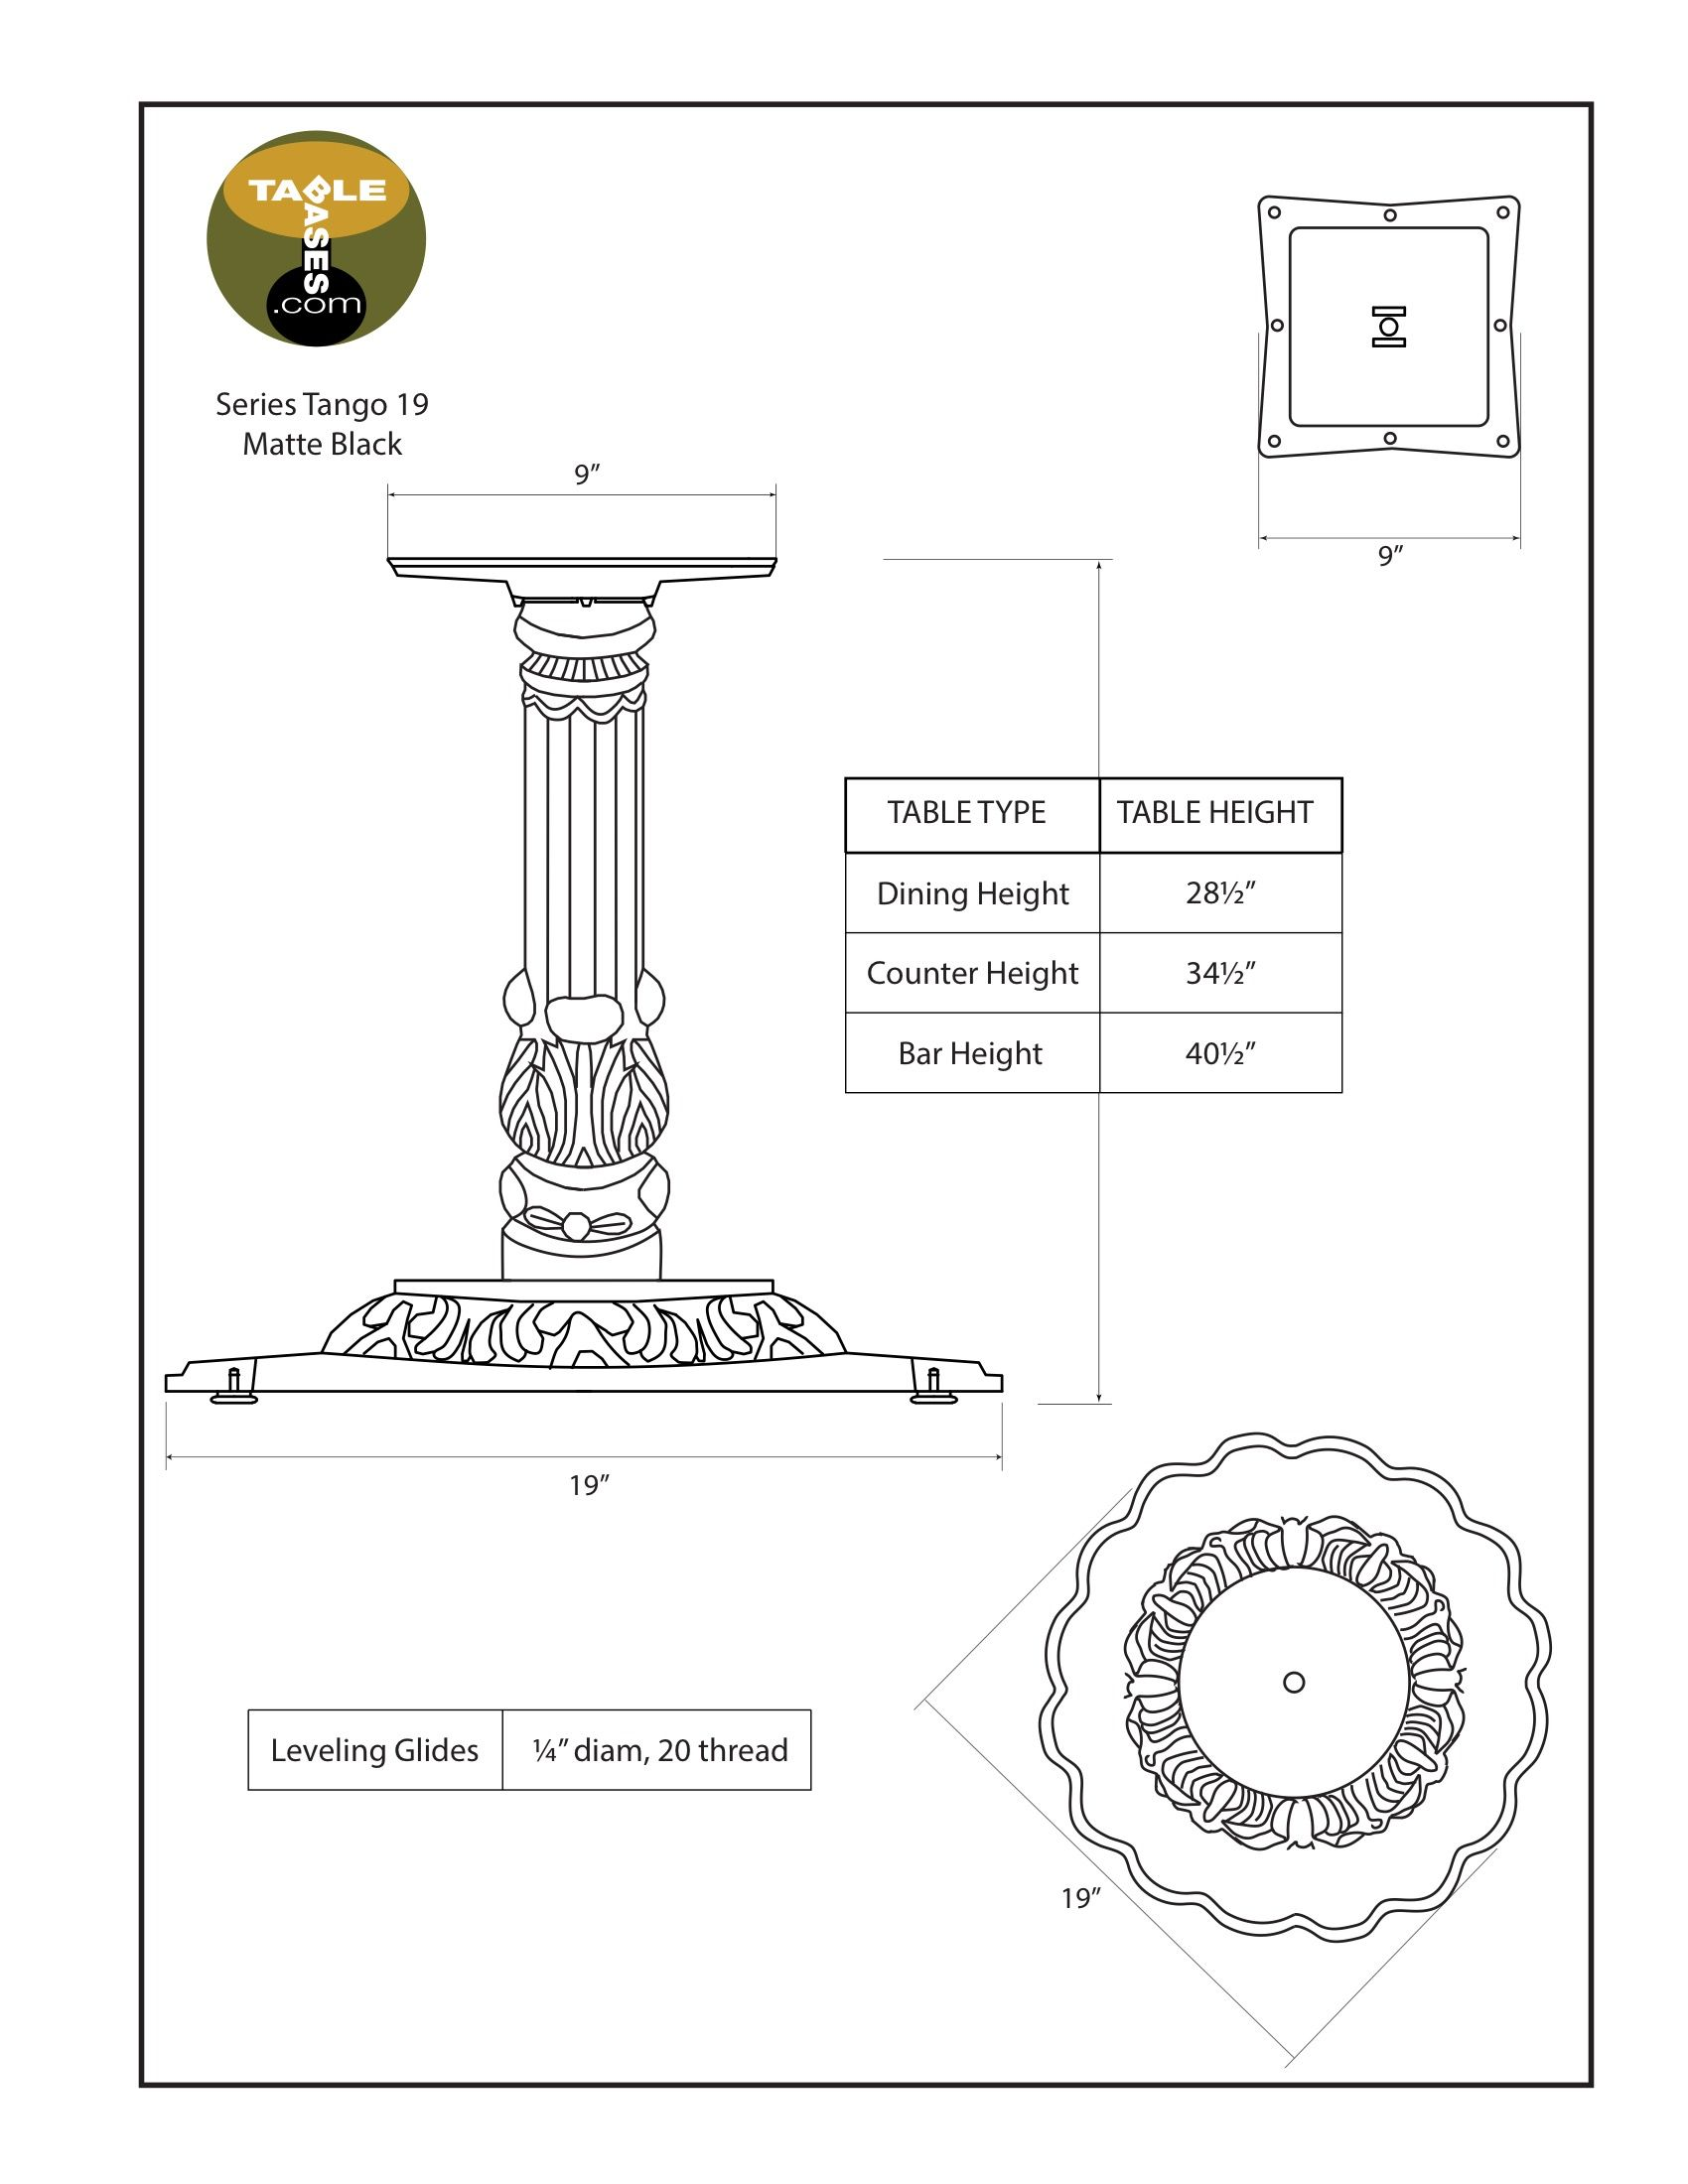 Tango-19 Matte Black Table Base - Specifications